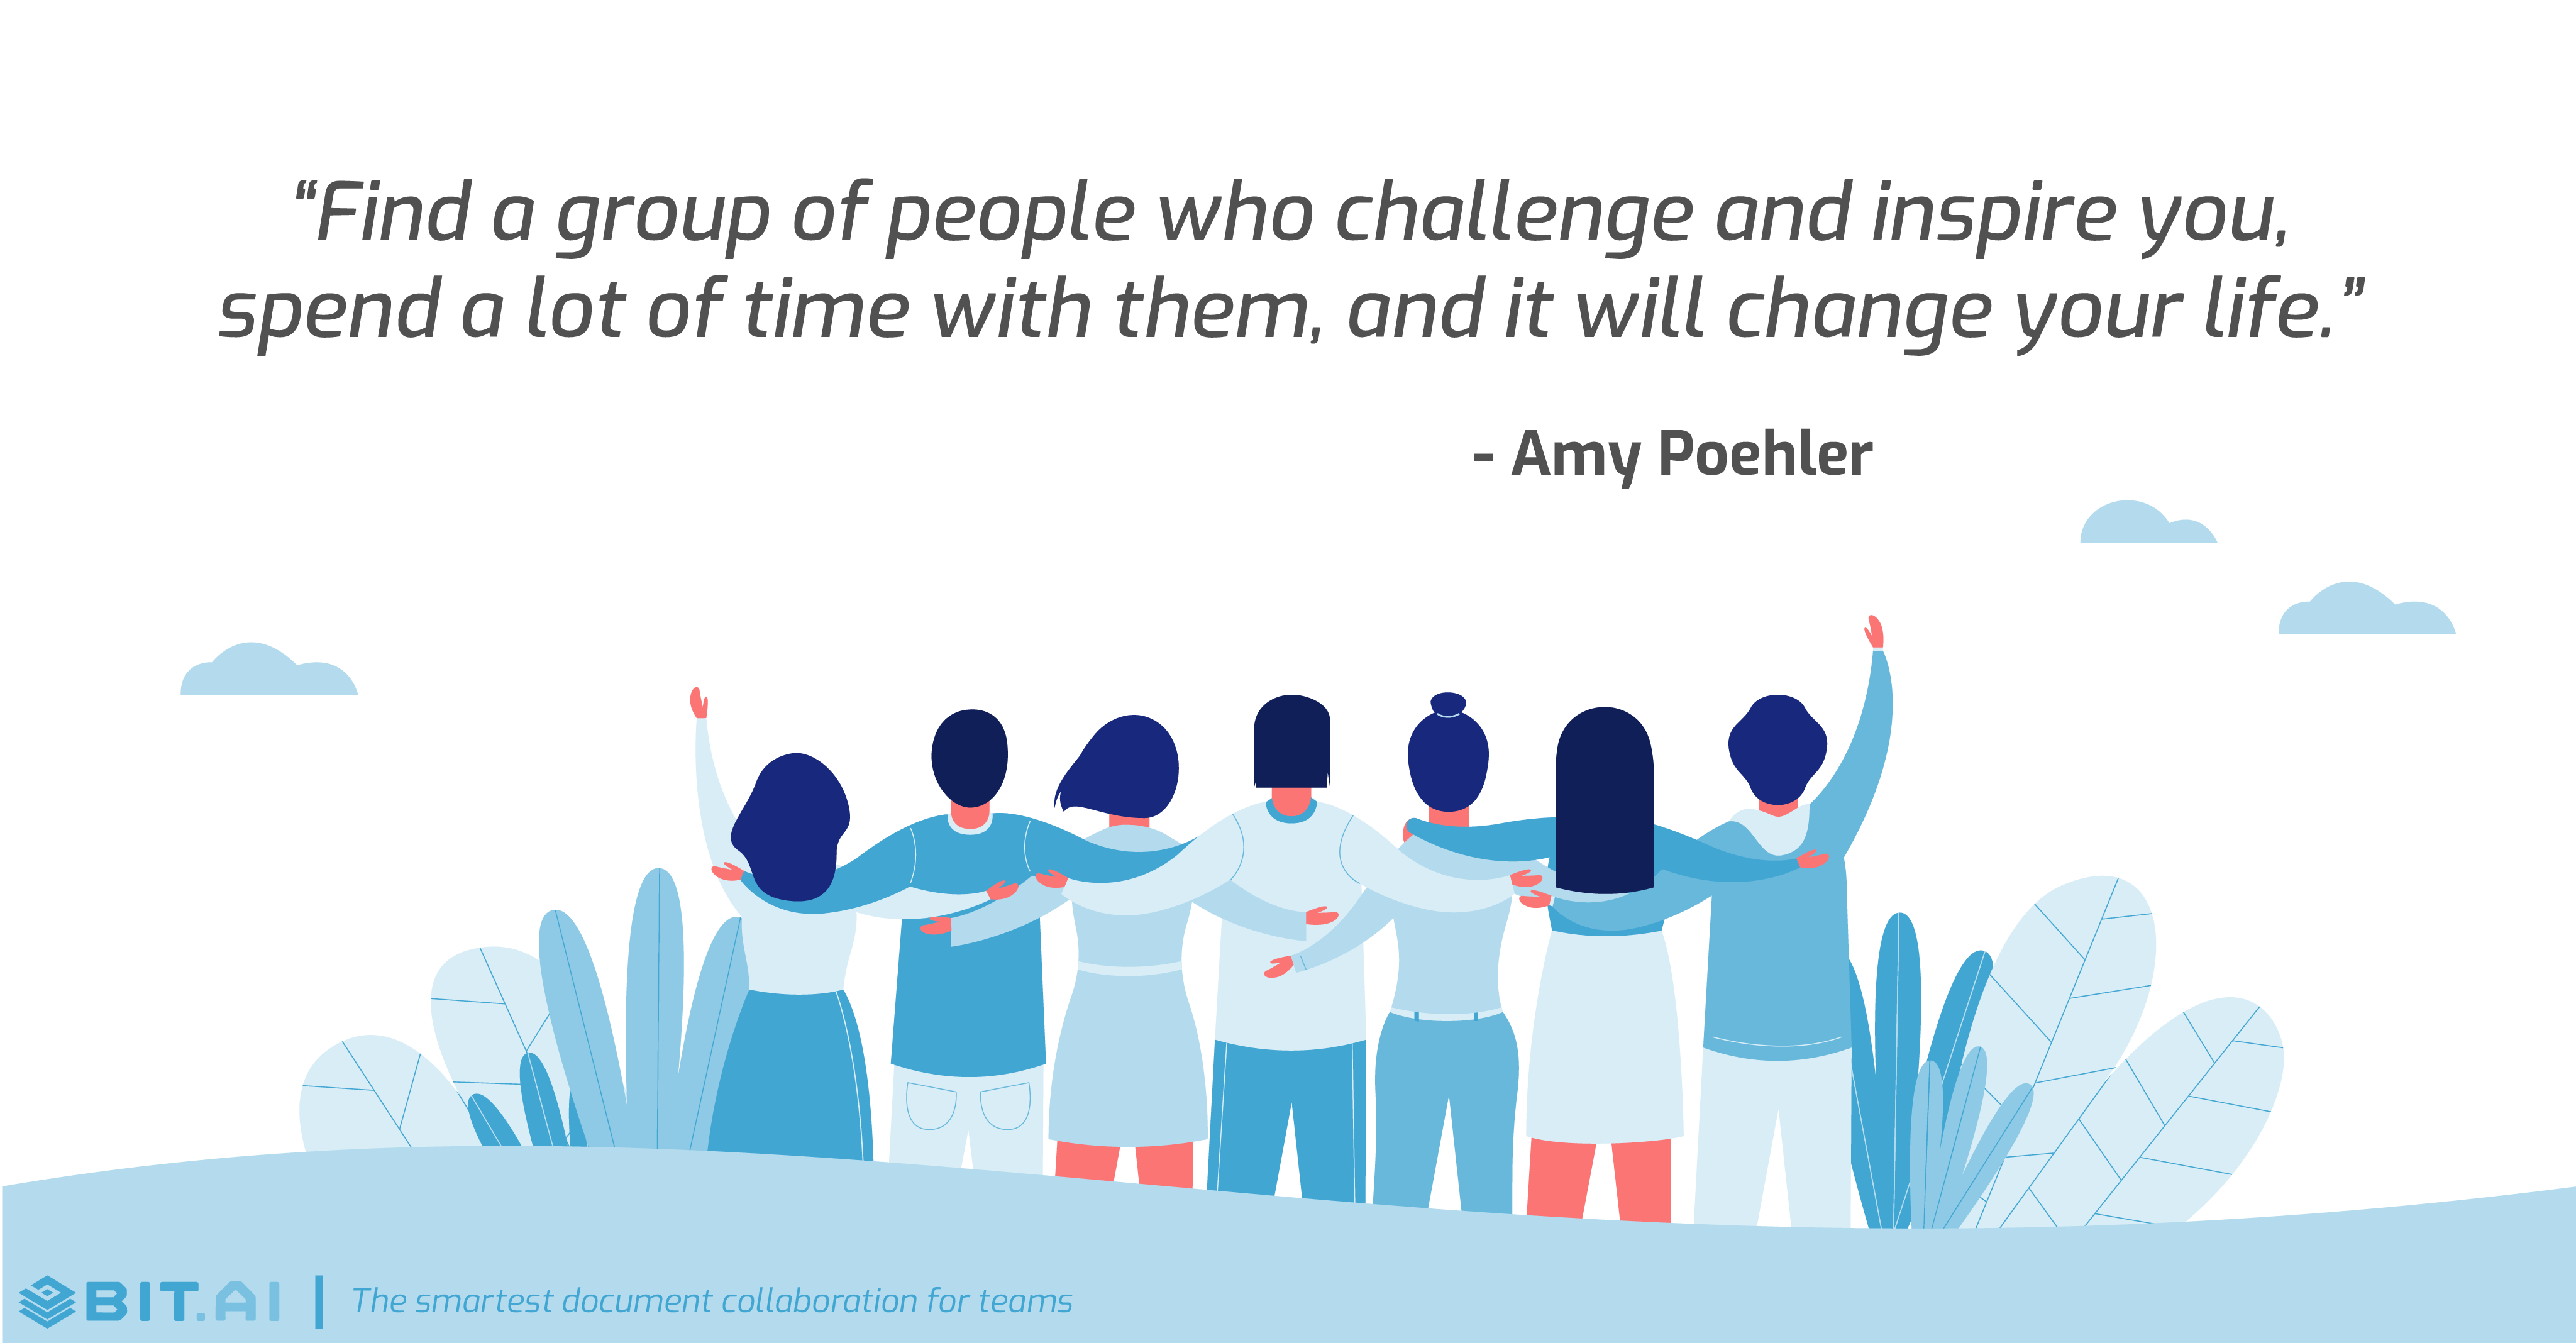 Teamwork collaboration quote by Amy Poehler